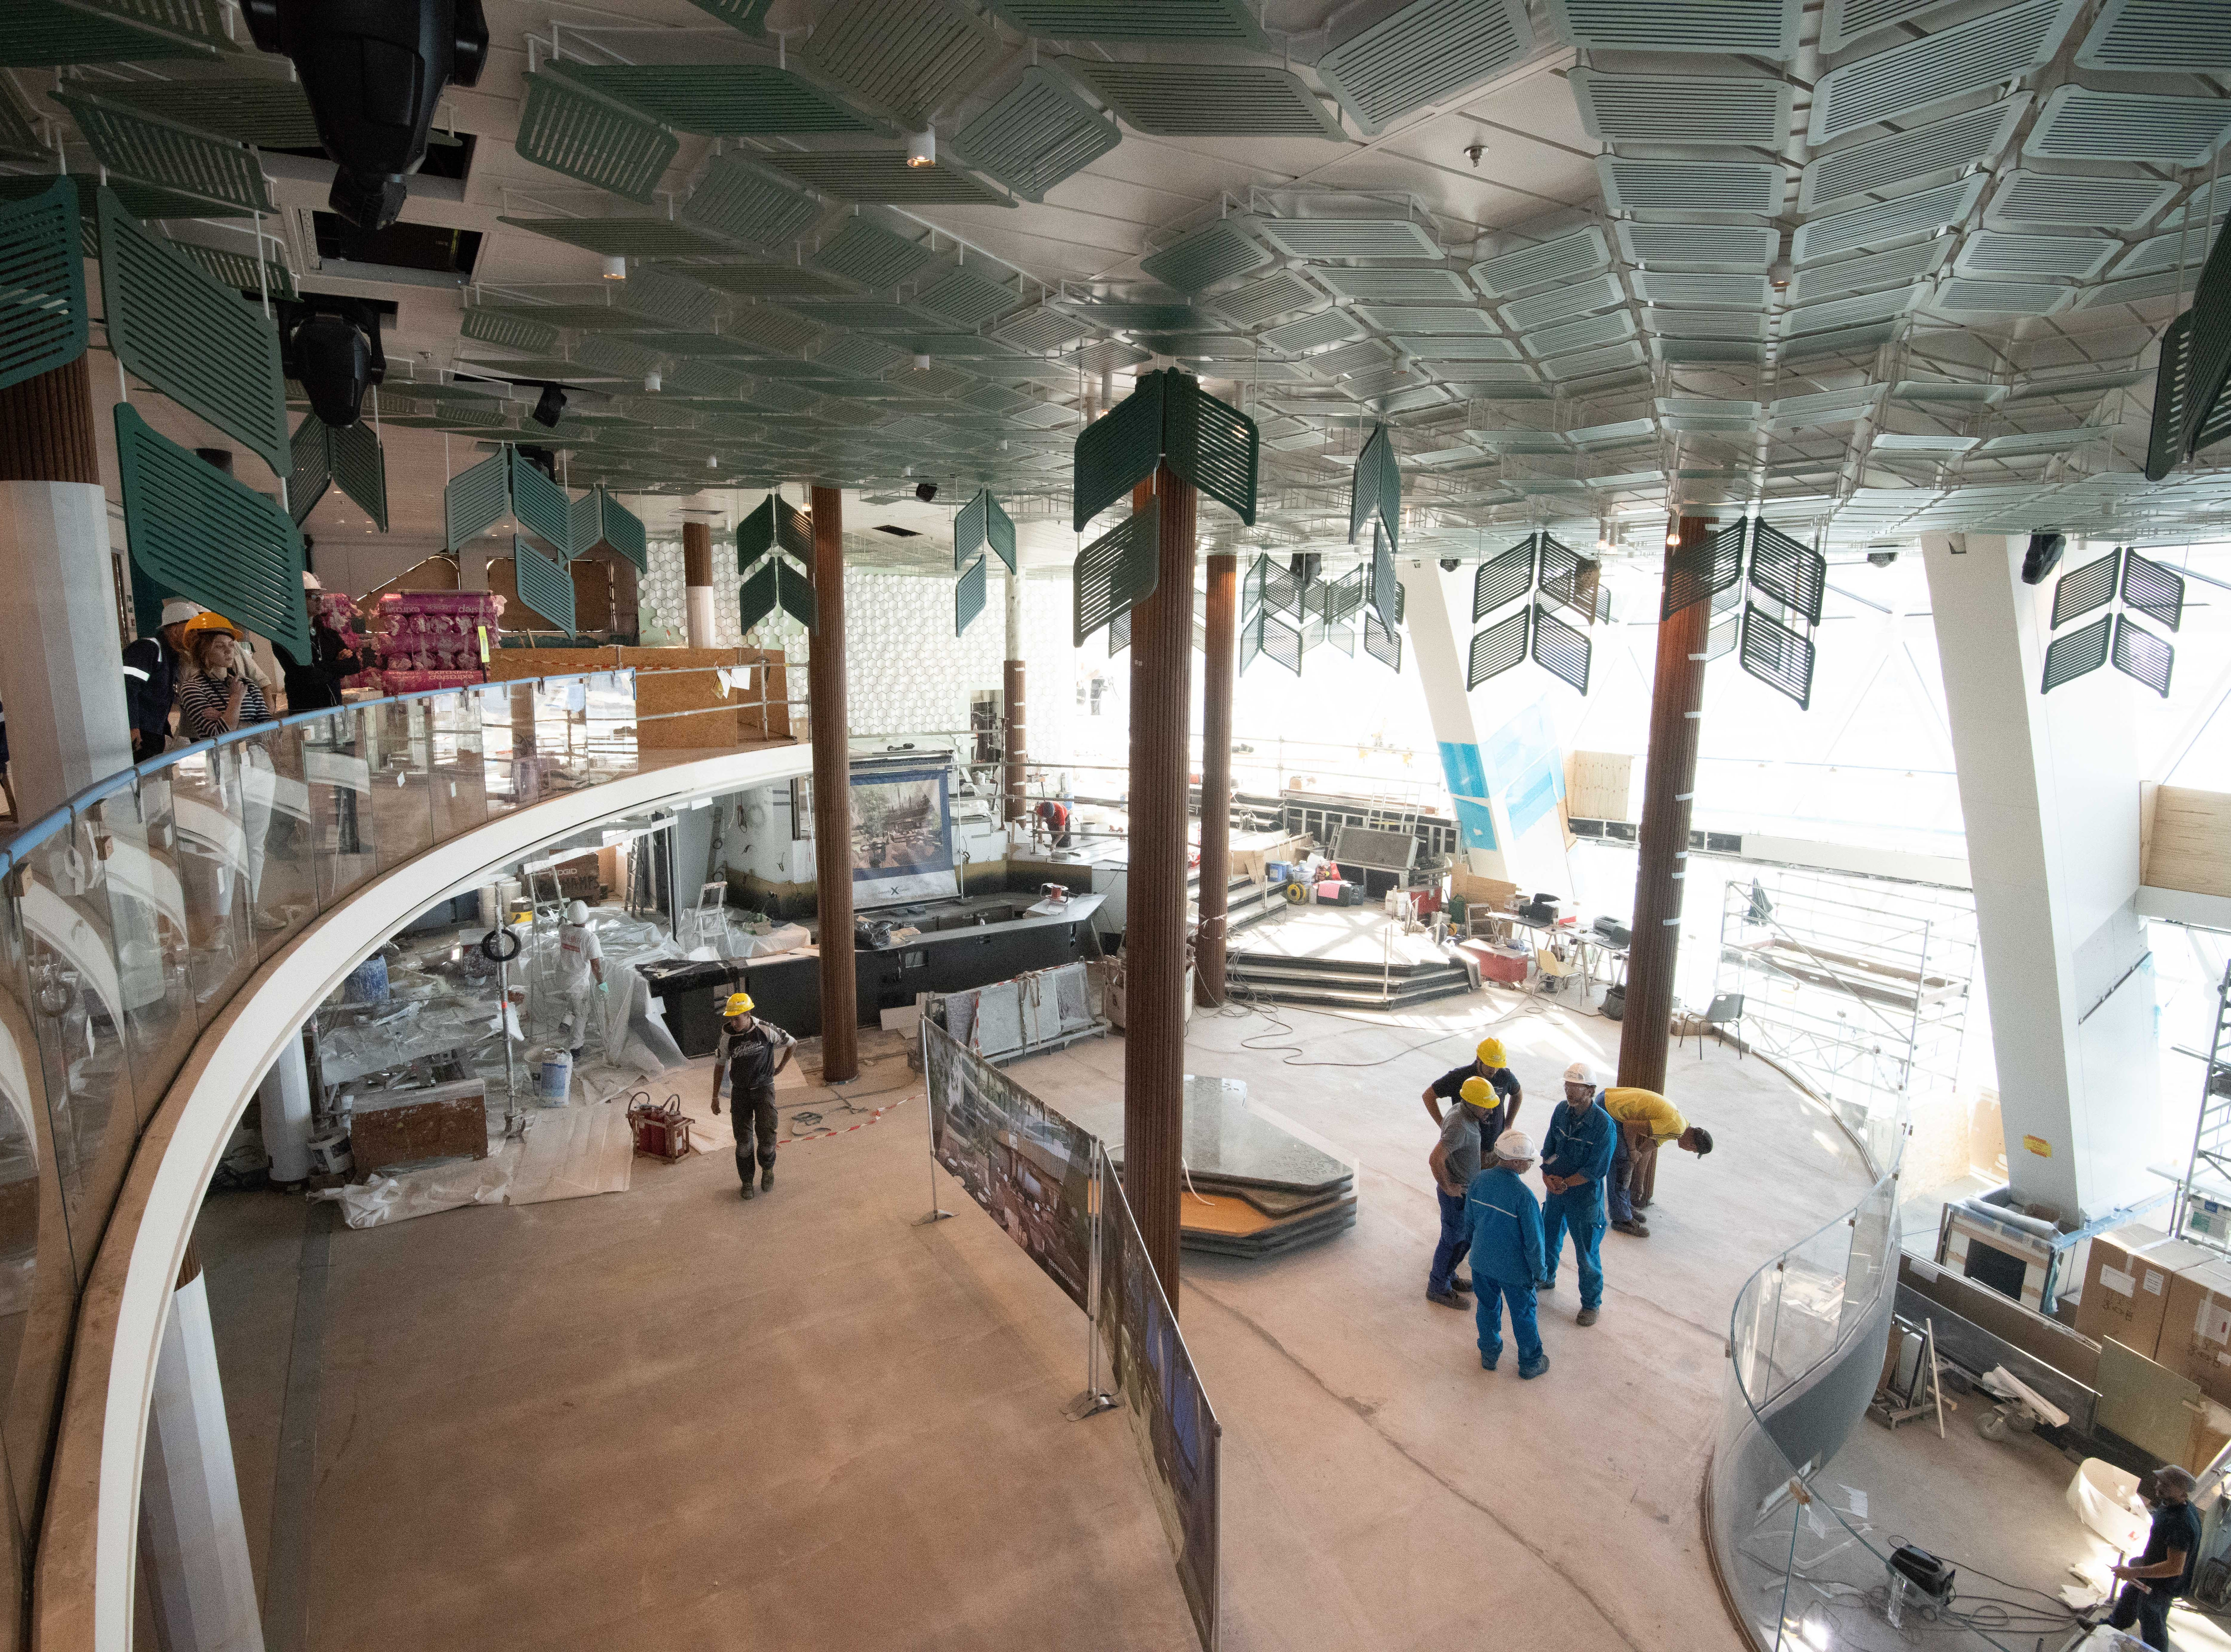 A highlight of Celebrity Edge will be Eden, a three-deck high terraced lounge that overlooks the back of the ship. It features floor-to-ceiling windows that span all three decks as well as window seating along a ramped walkway.